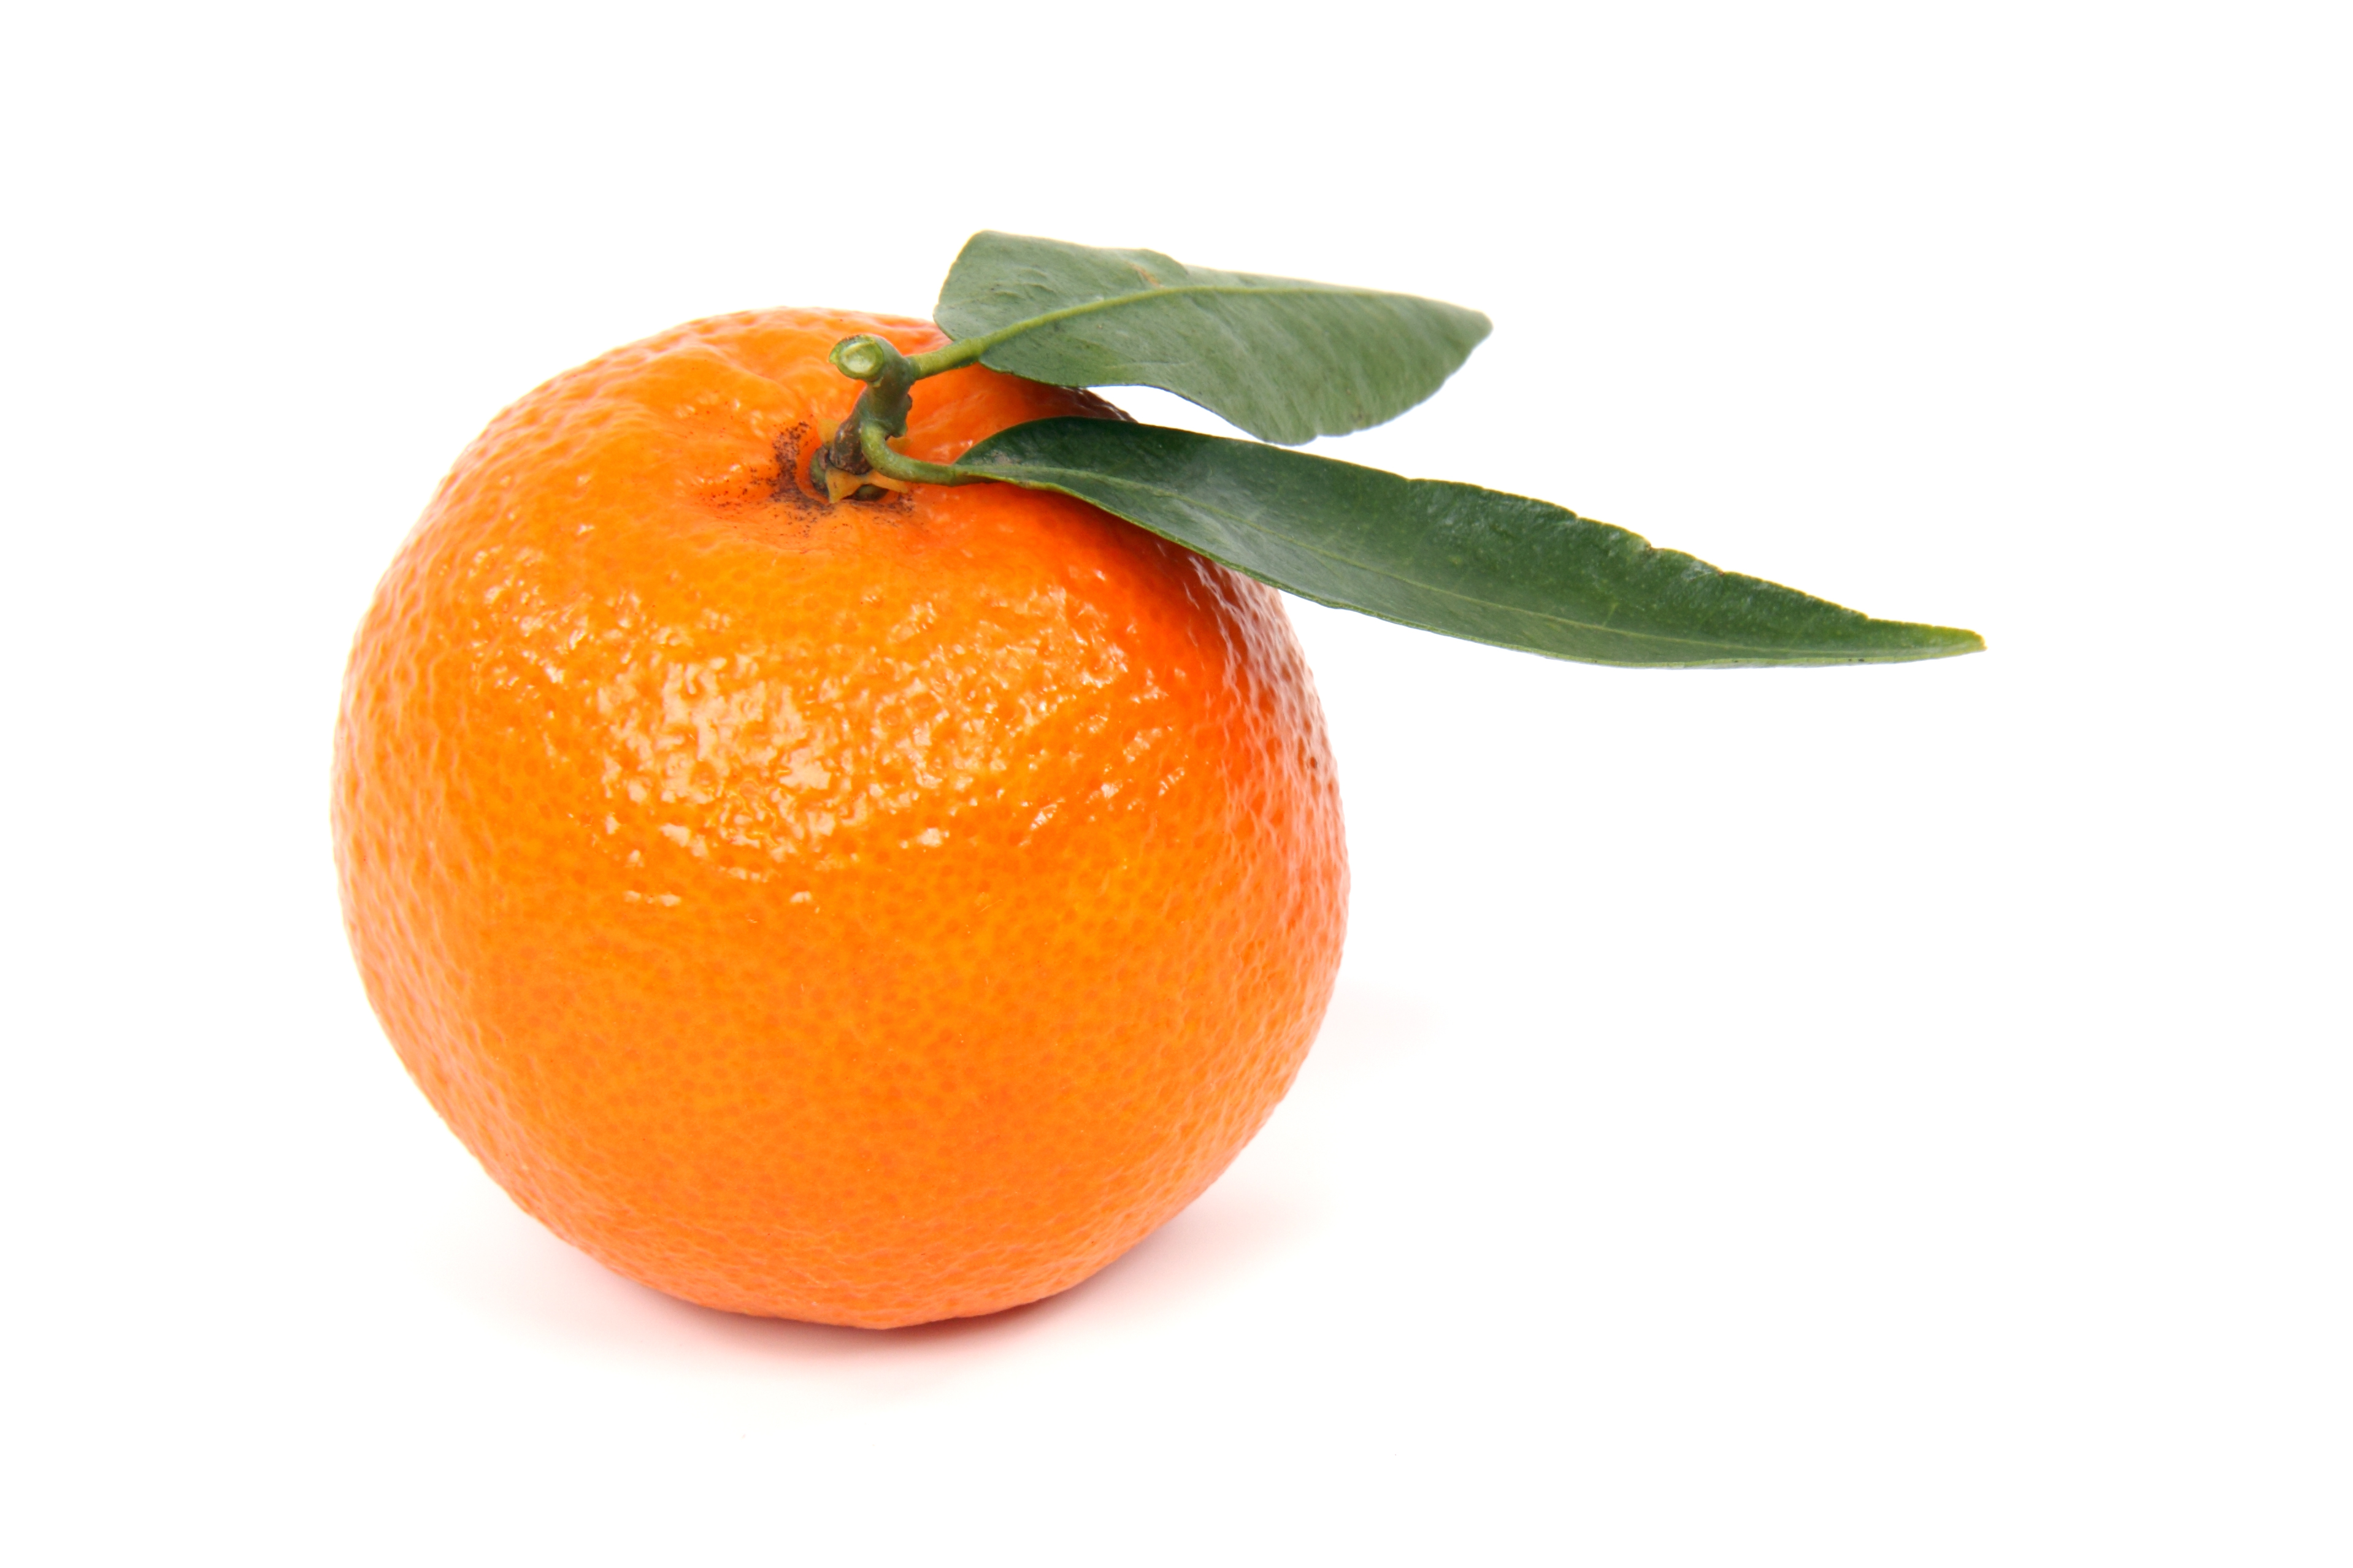 The Clementine - proud member of the mandarine orange family